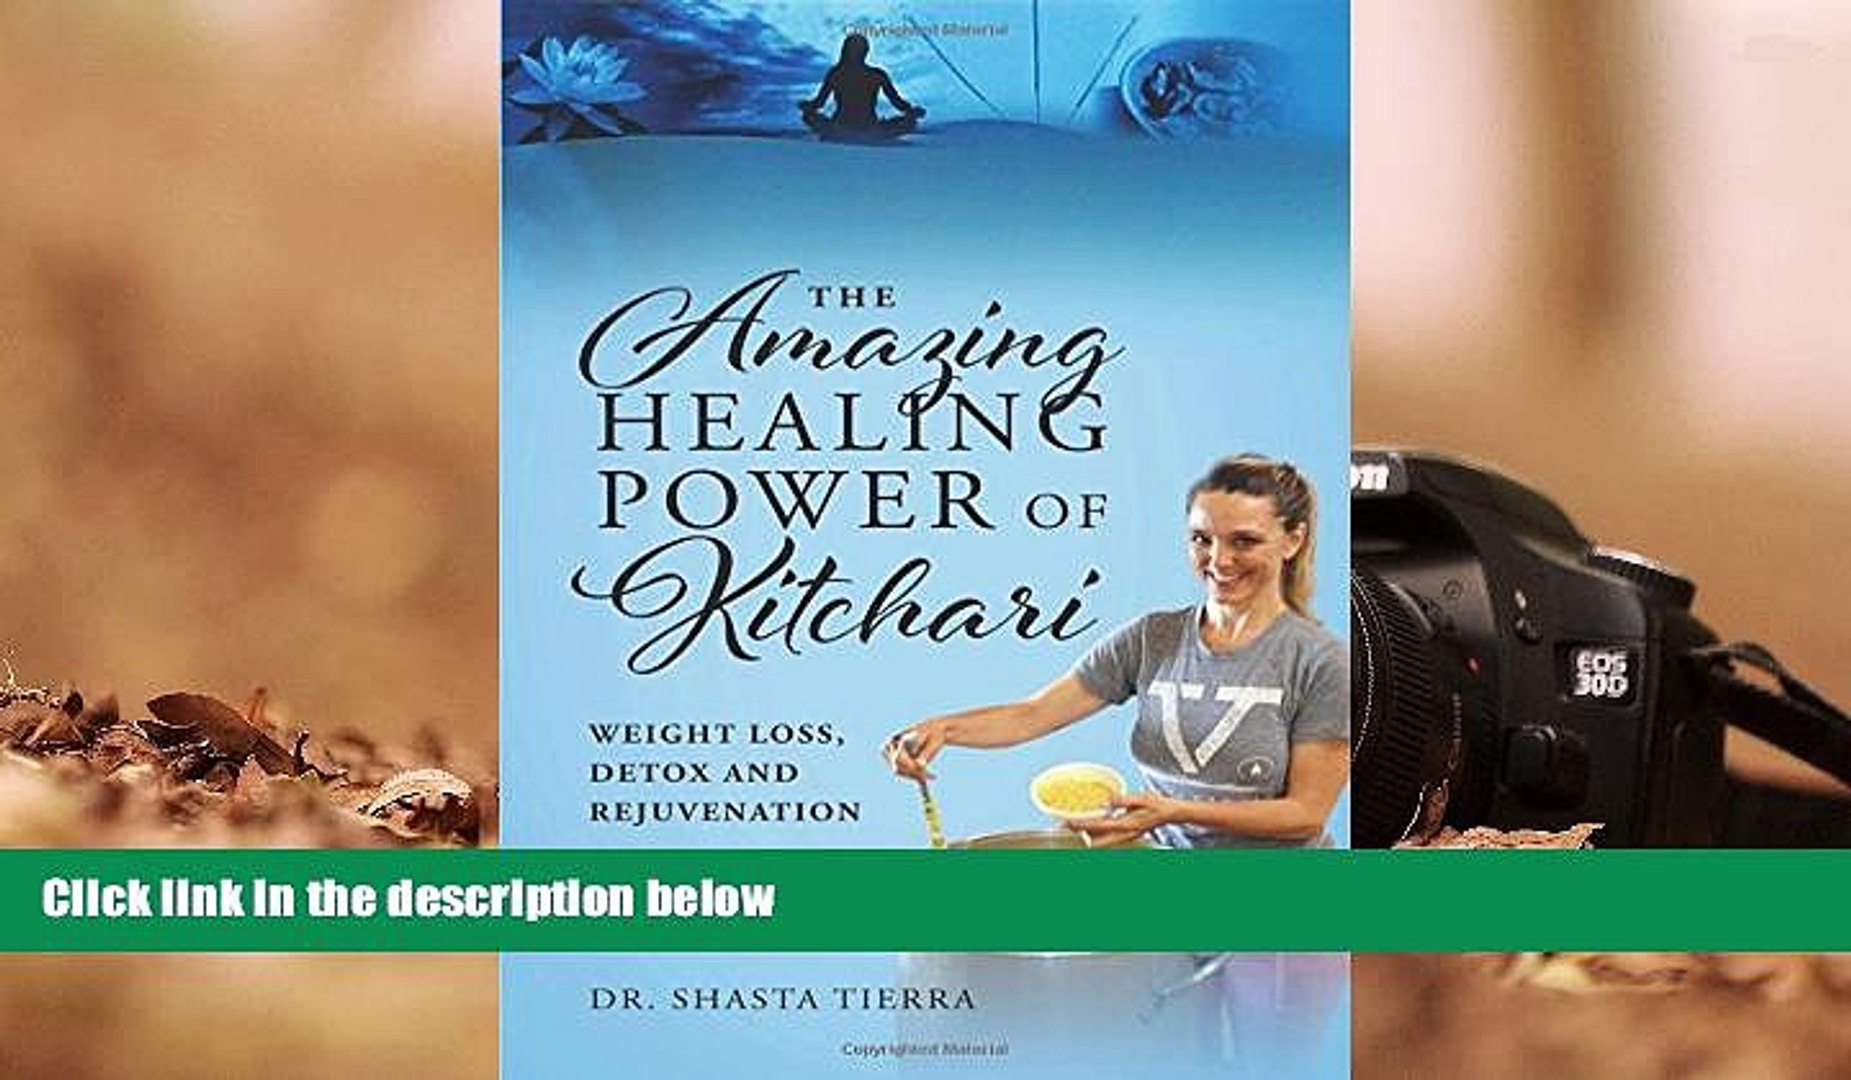 The Amazing Healing Power of Kitchari: Weight Loss, Detox and Rejuvenation